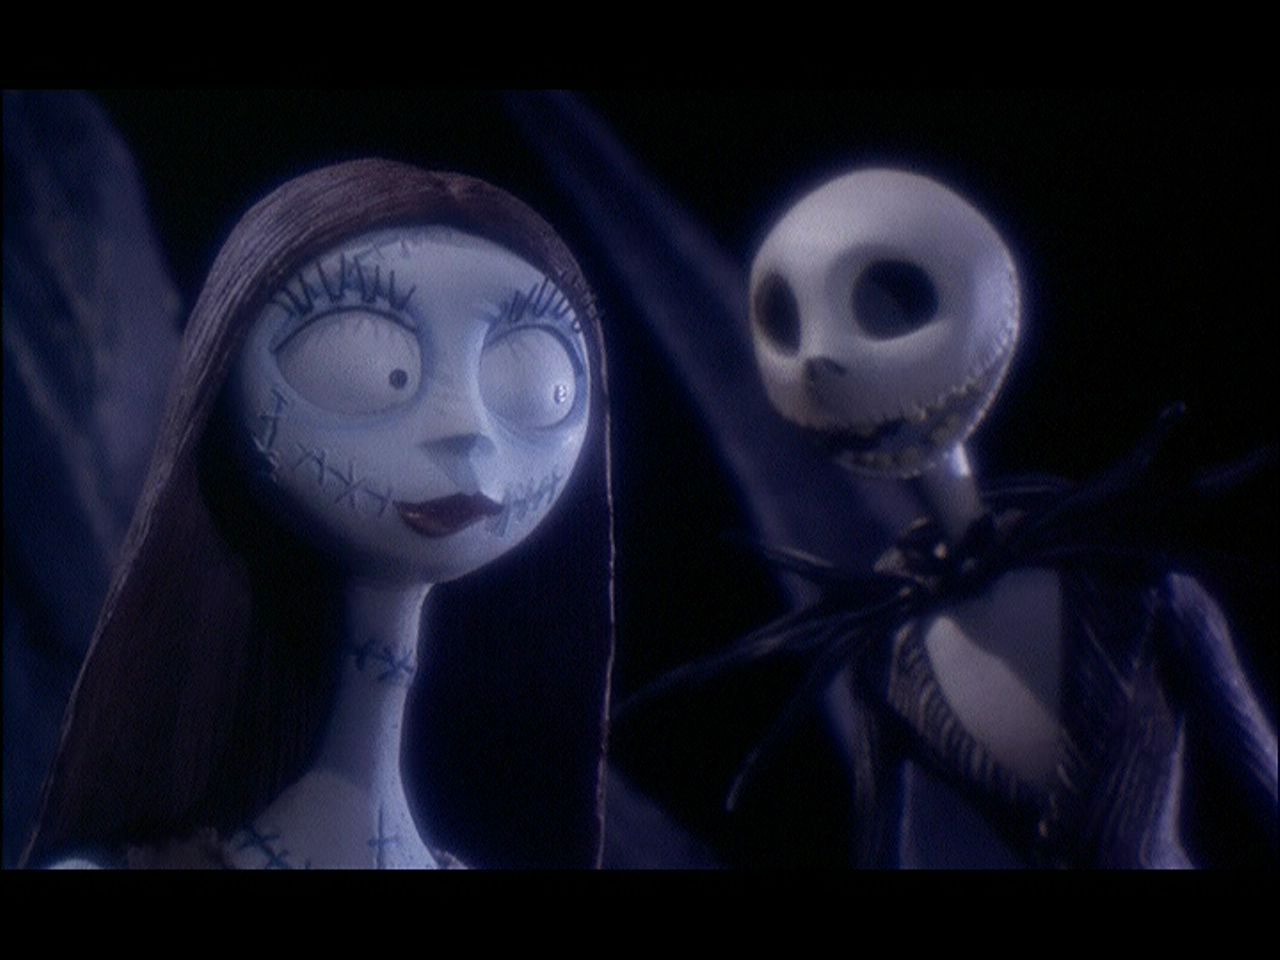 Tim Burton Nightmare Before Christmas Jack And Sally.Jack And Sally Tim Burton Image 18279218 Fanpop